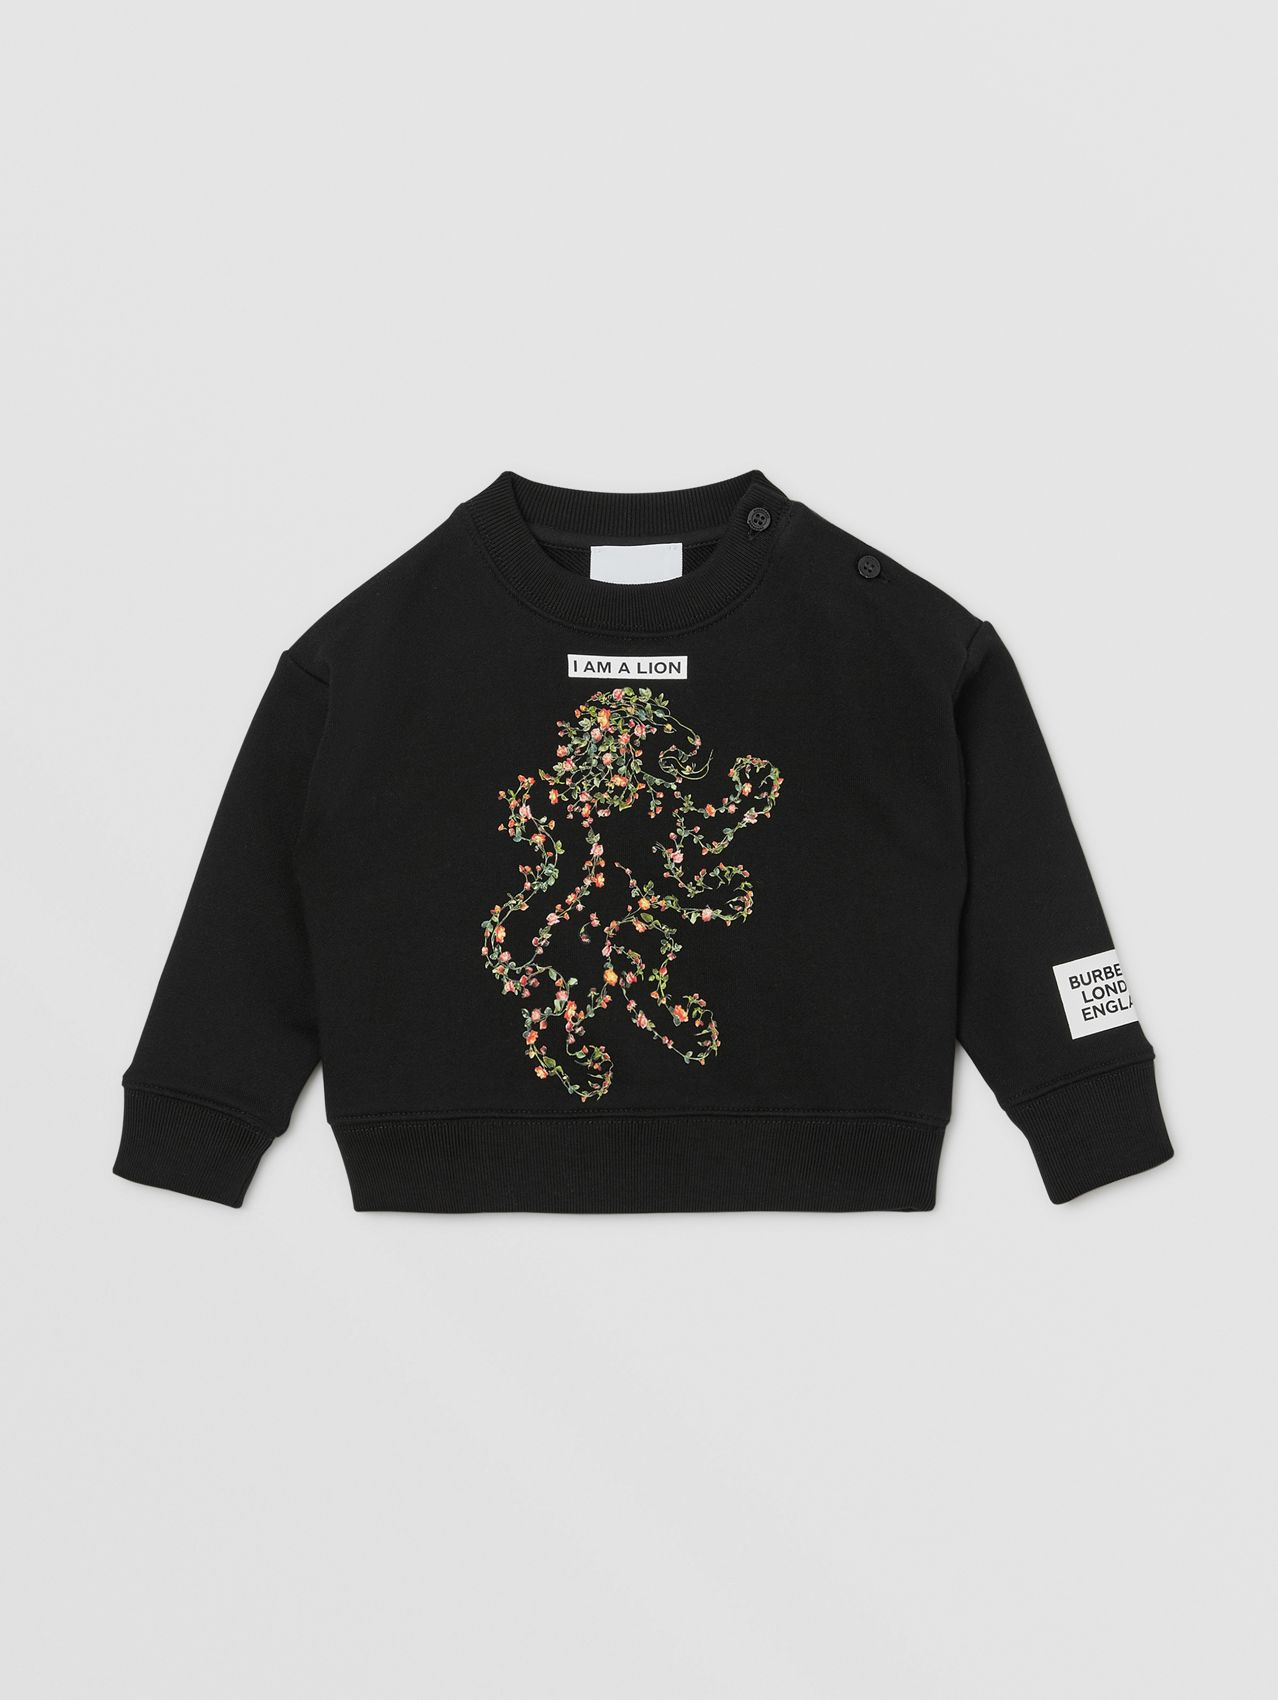 Montage Print Cotton Sweatshirt in Black